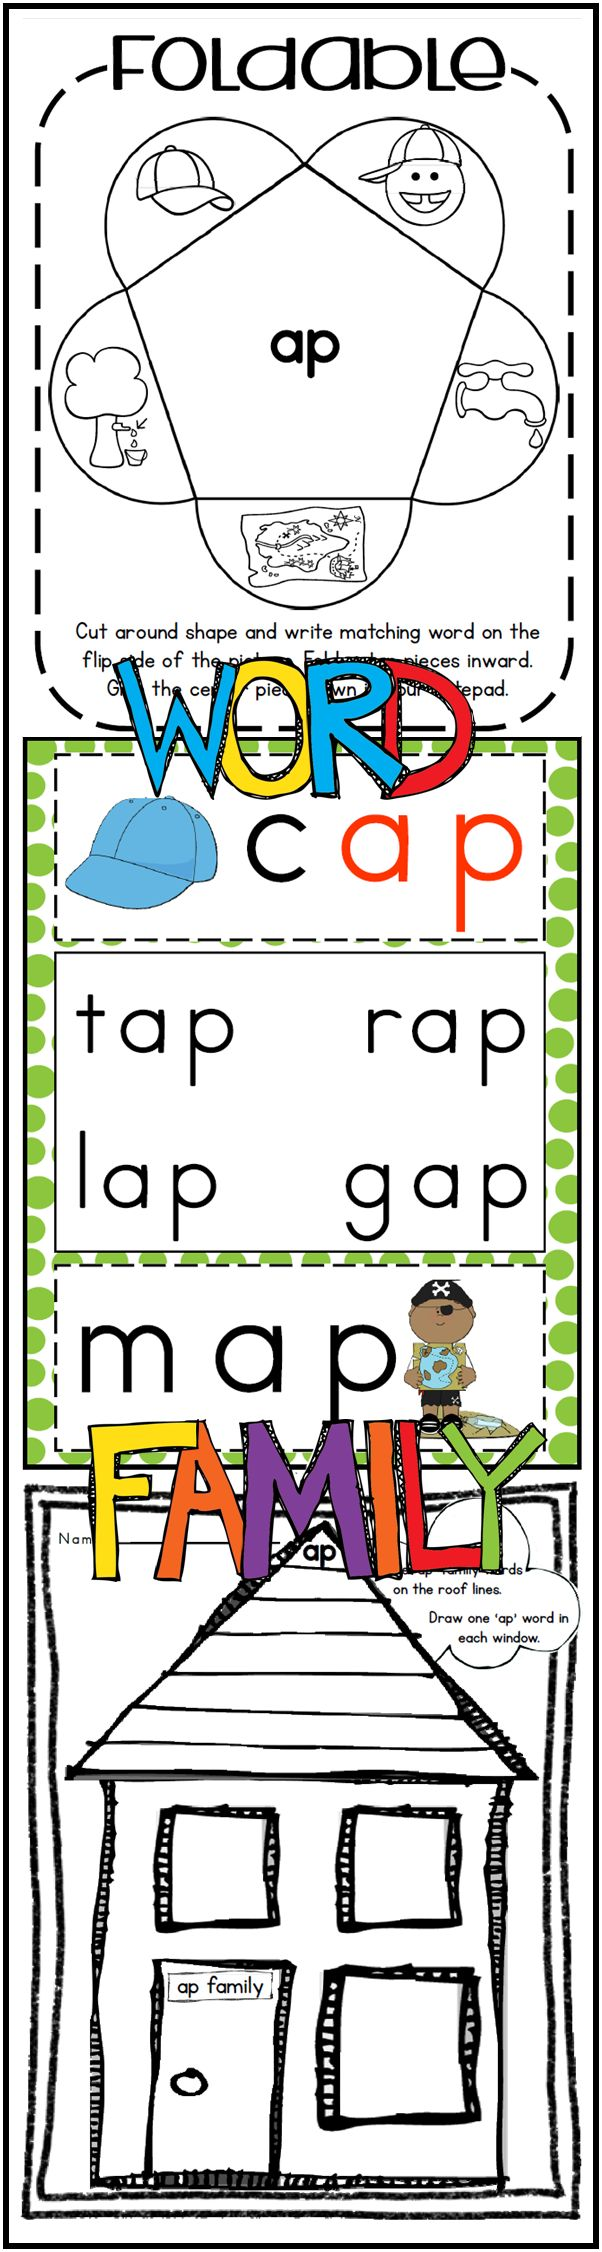 worksheet Ap Word Family Worksheets 217 best centers word families images on pinterest family ap resources and worksheets